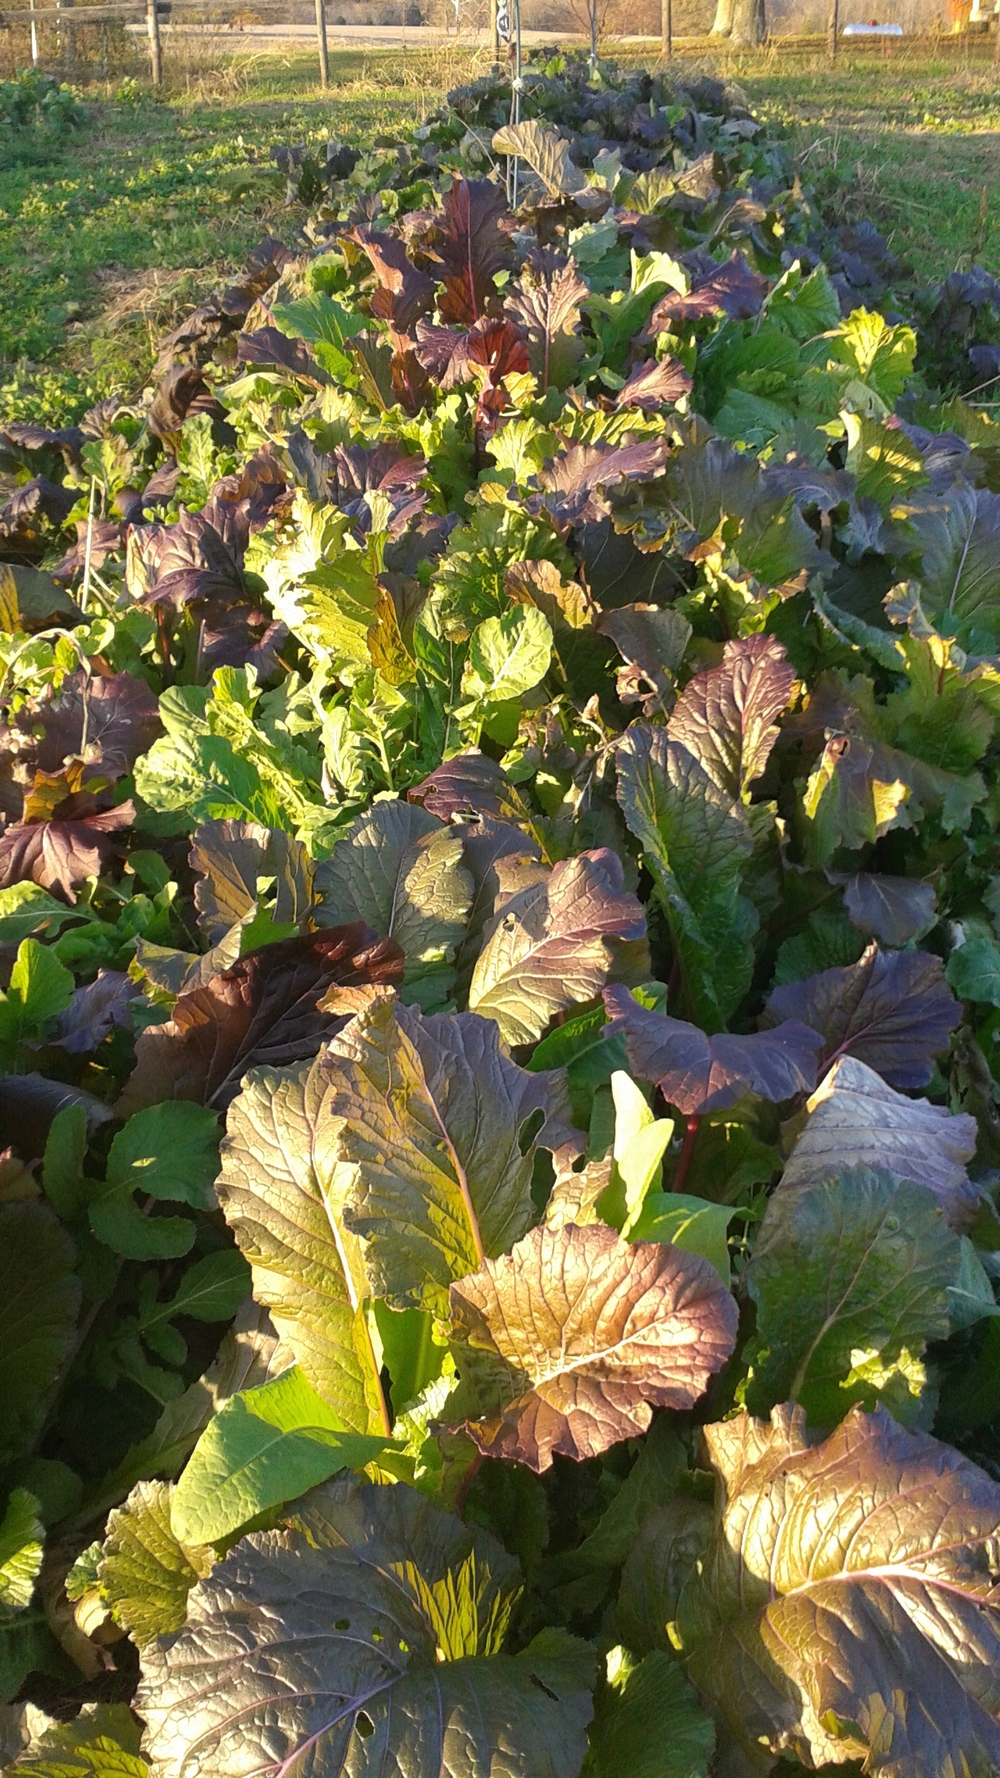 Garden greens in their first season in a client's garden.